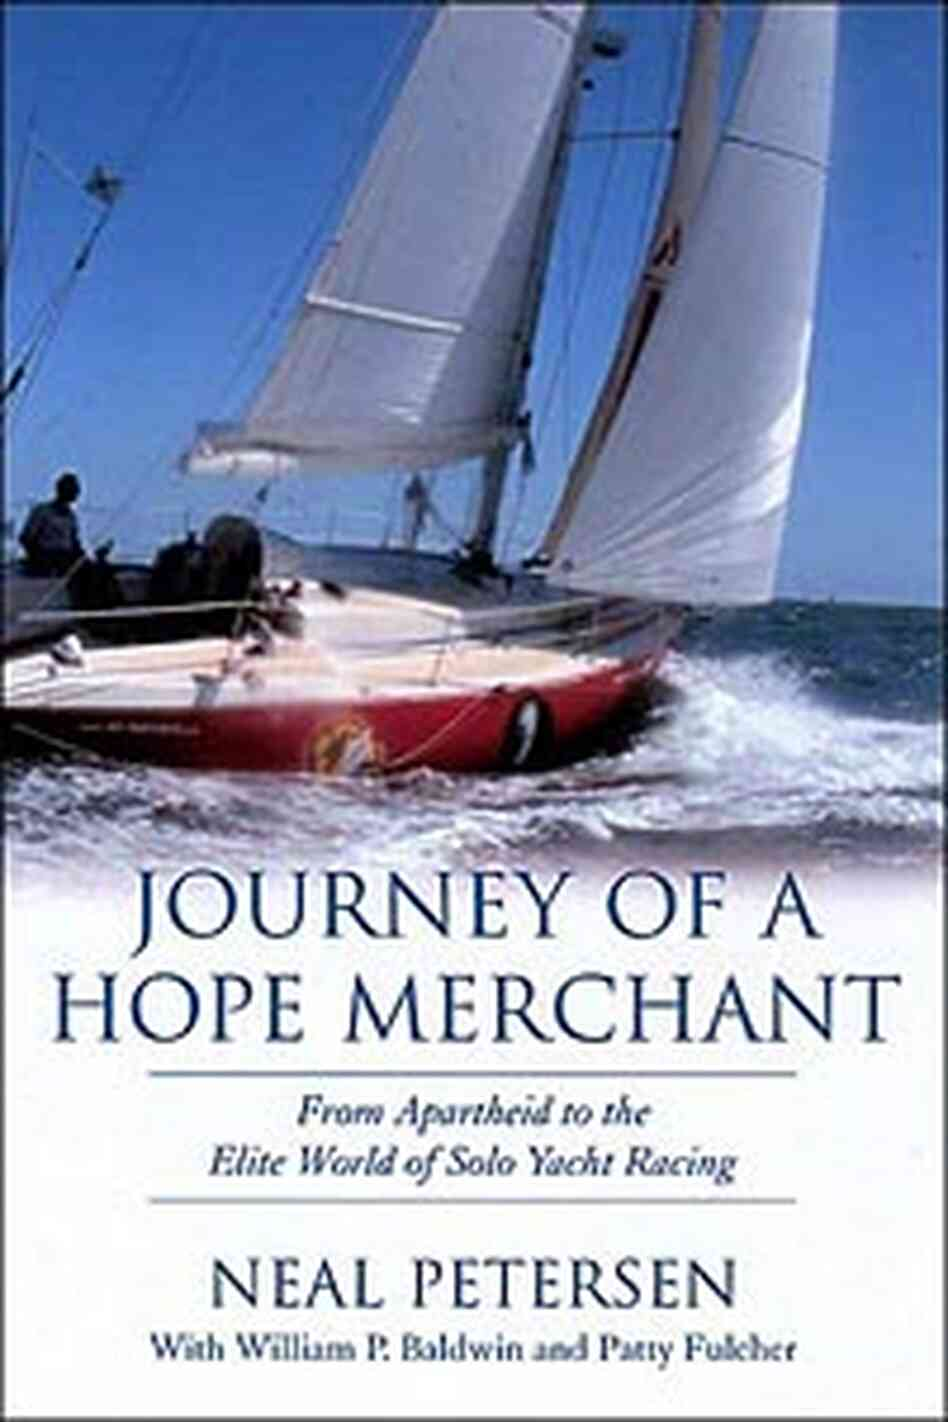 Cover for Petersen's autobiography 'Journey of a Hope Merchant'